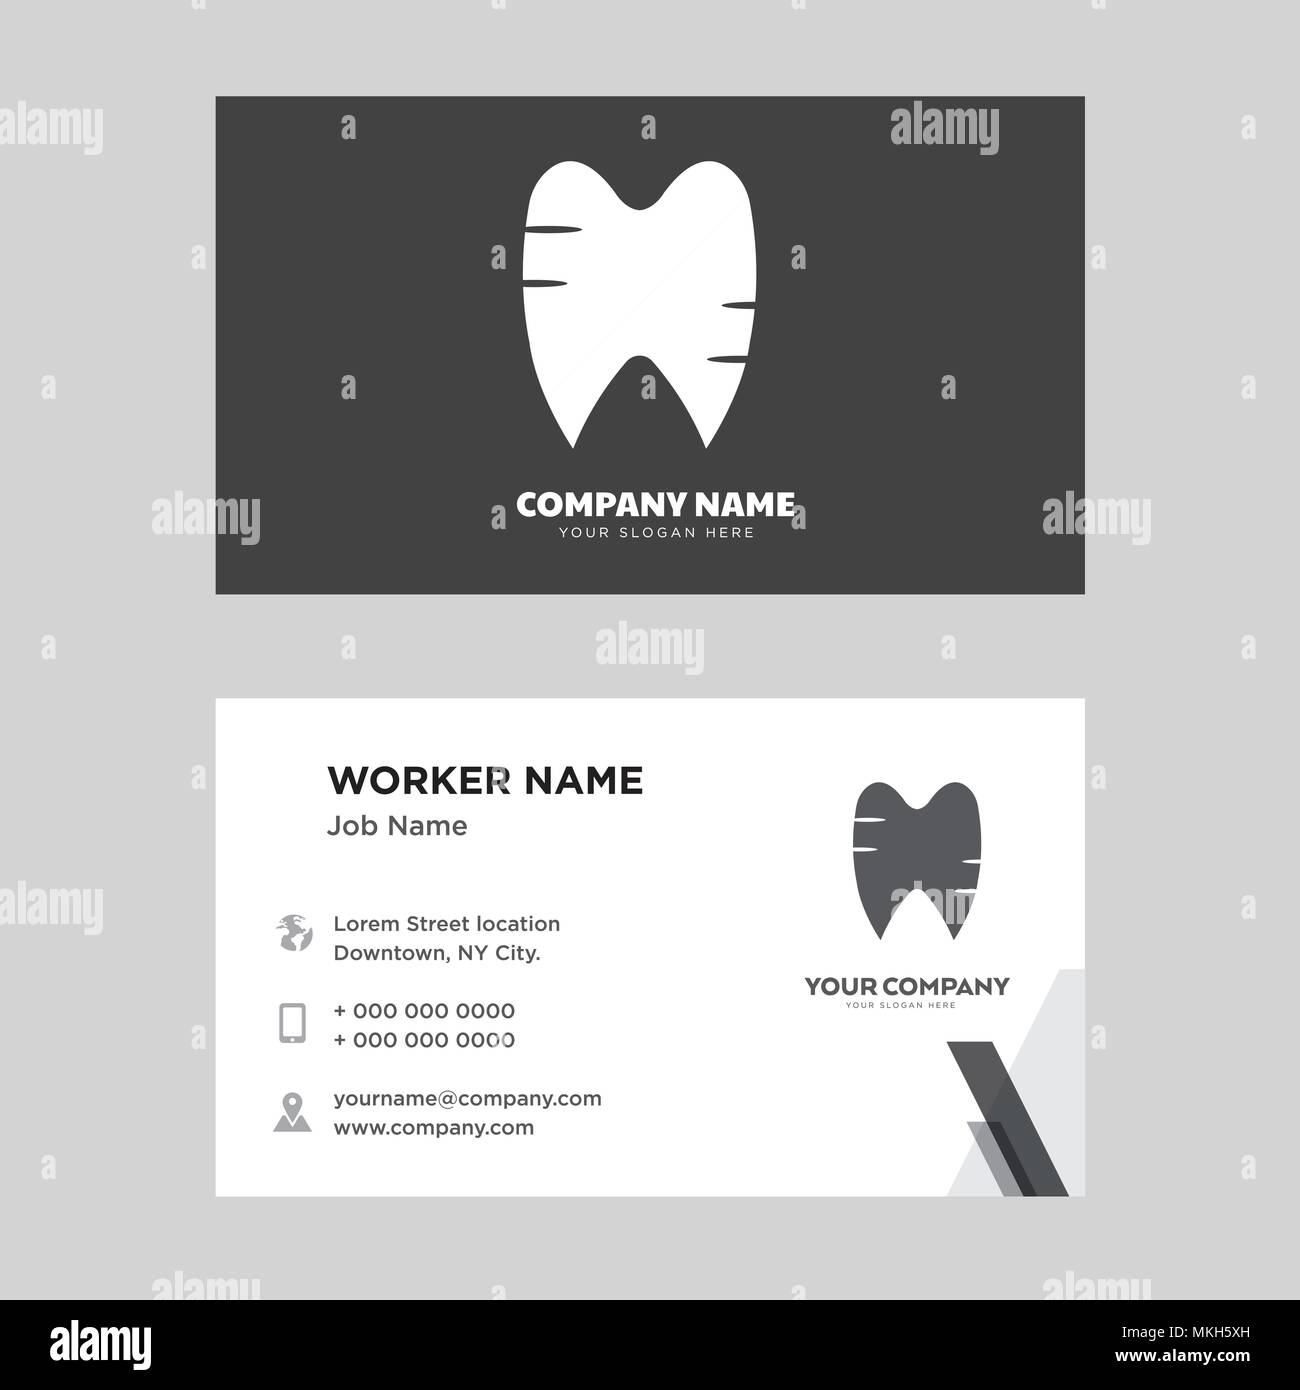 Tooth and gums business card design template visiting for your tooth and gums business card design template visiting for your company modern horizontal identity card vector reheart Image collections